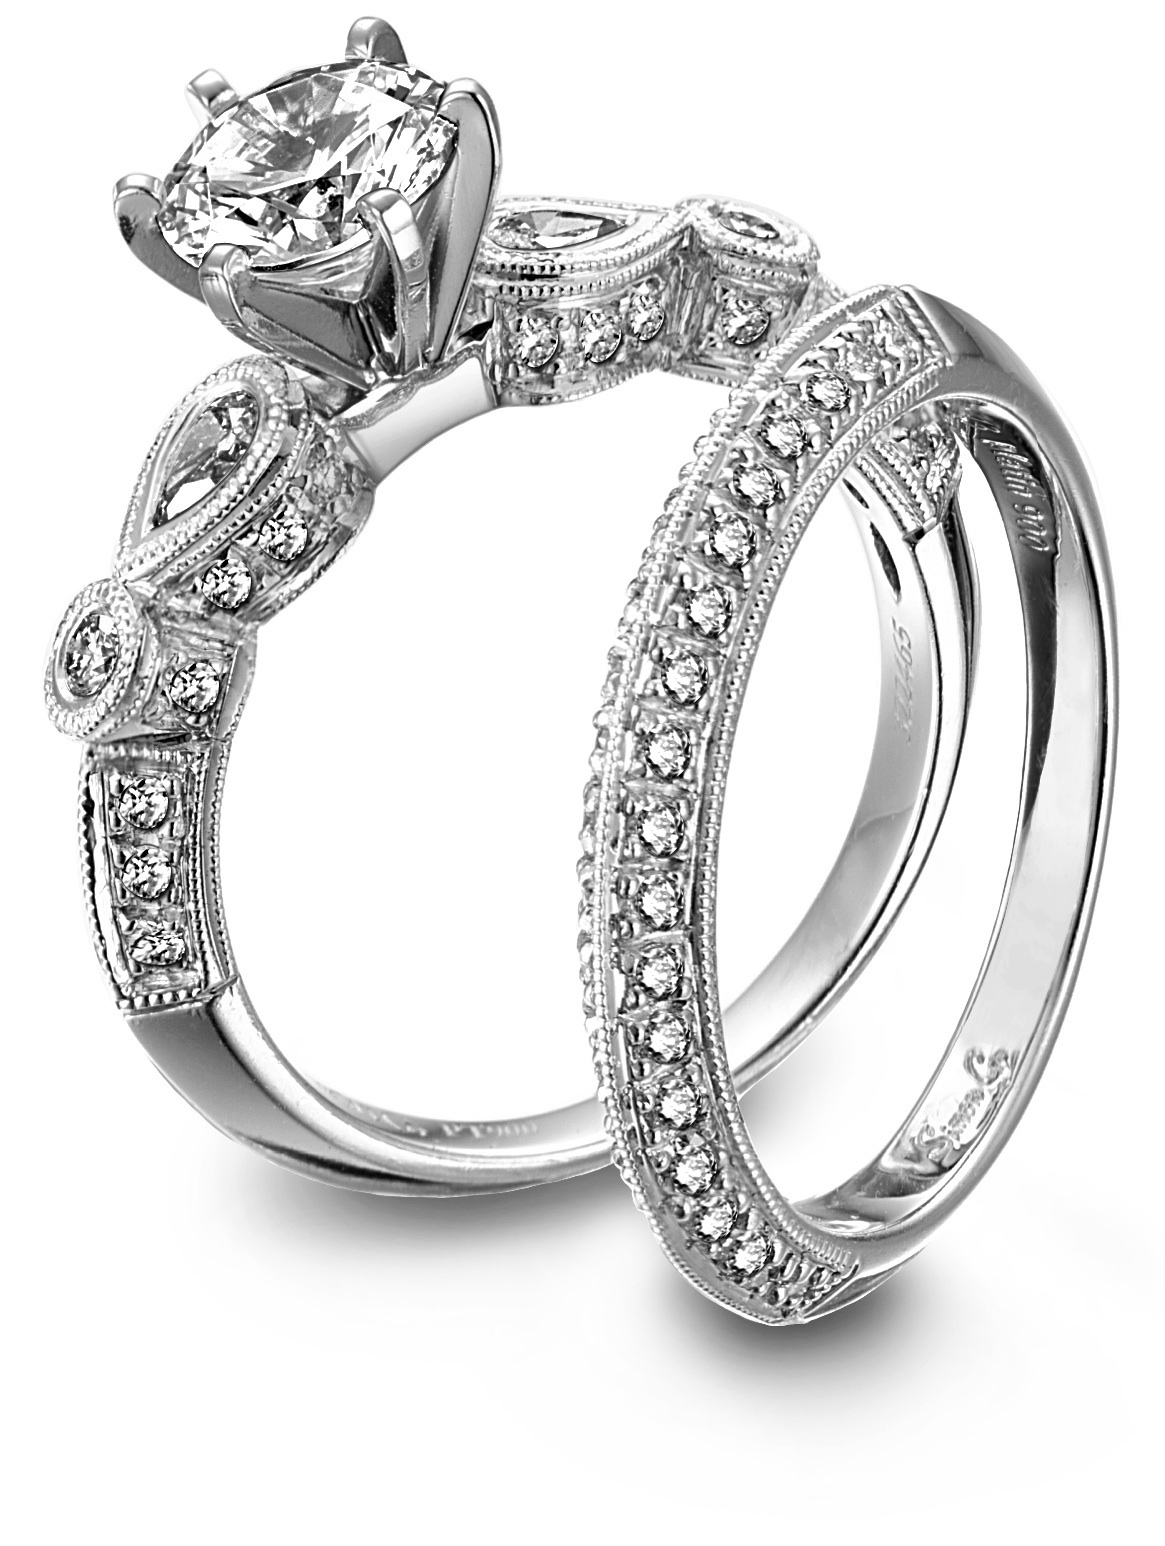 Diamond And Platinum Engagement Ring And Wedding Band Set By Simon G OneWed